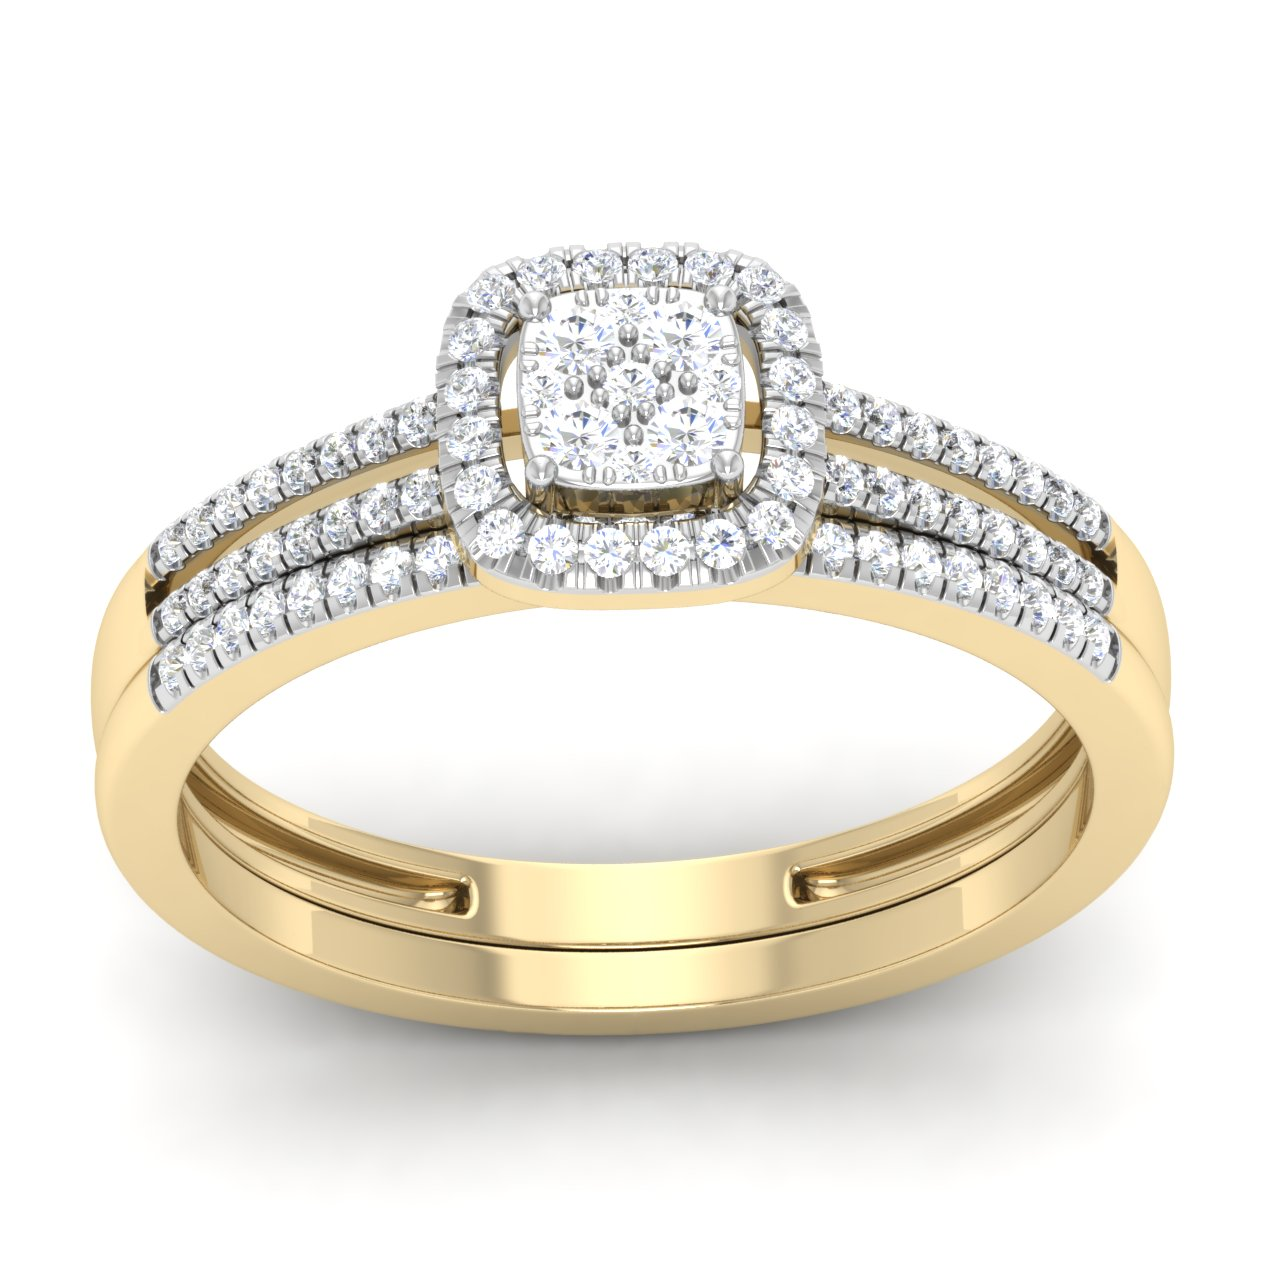 Trillion Designs 10K Yellow Gold 1 4Ct Round Cut Natural Diamond Cushion Frame Engagement Ring Set by Arina Jewelry